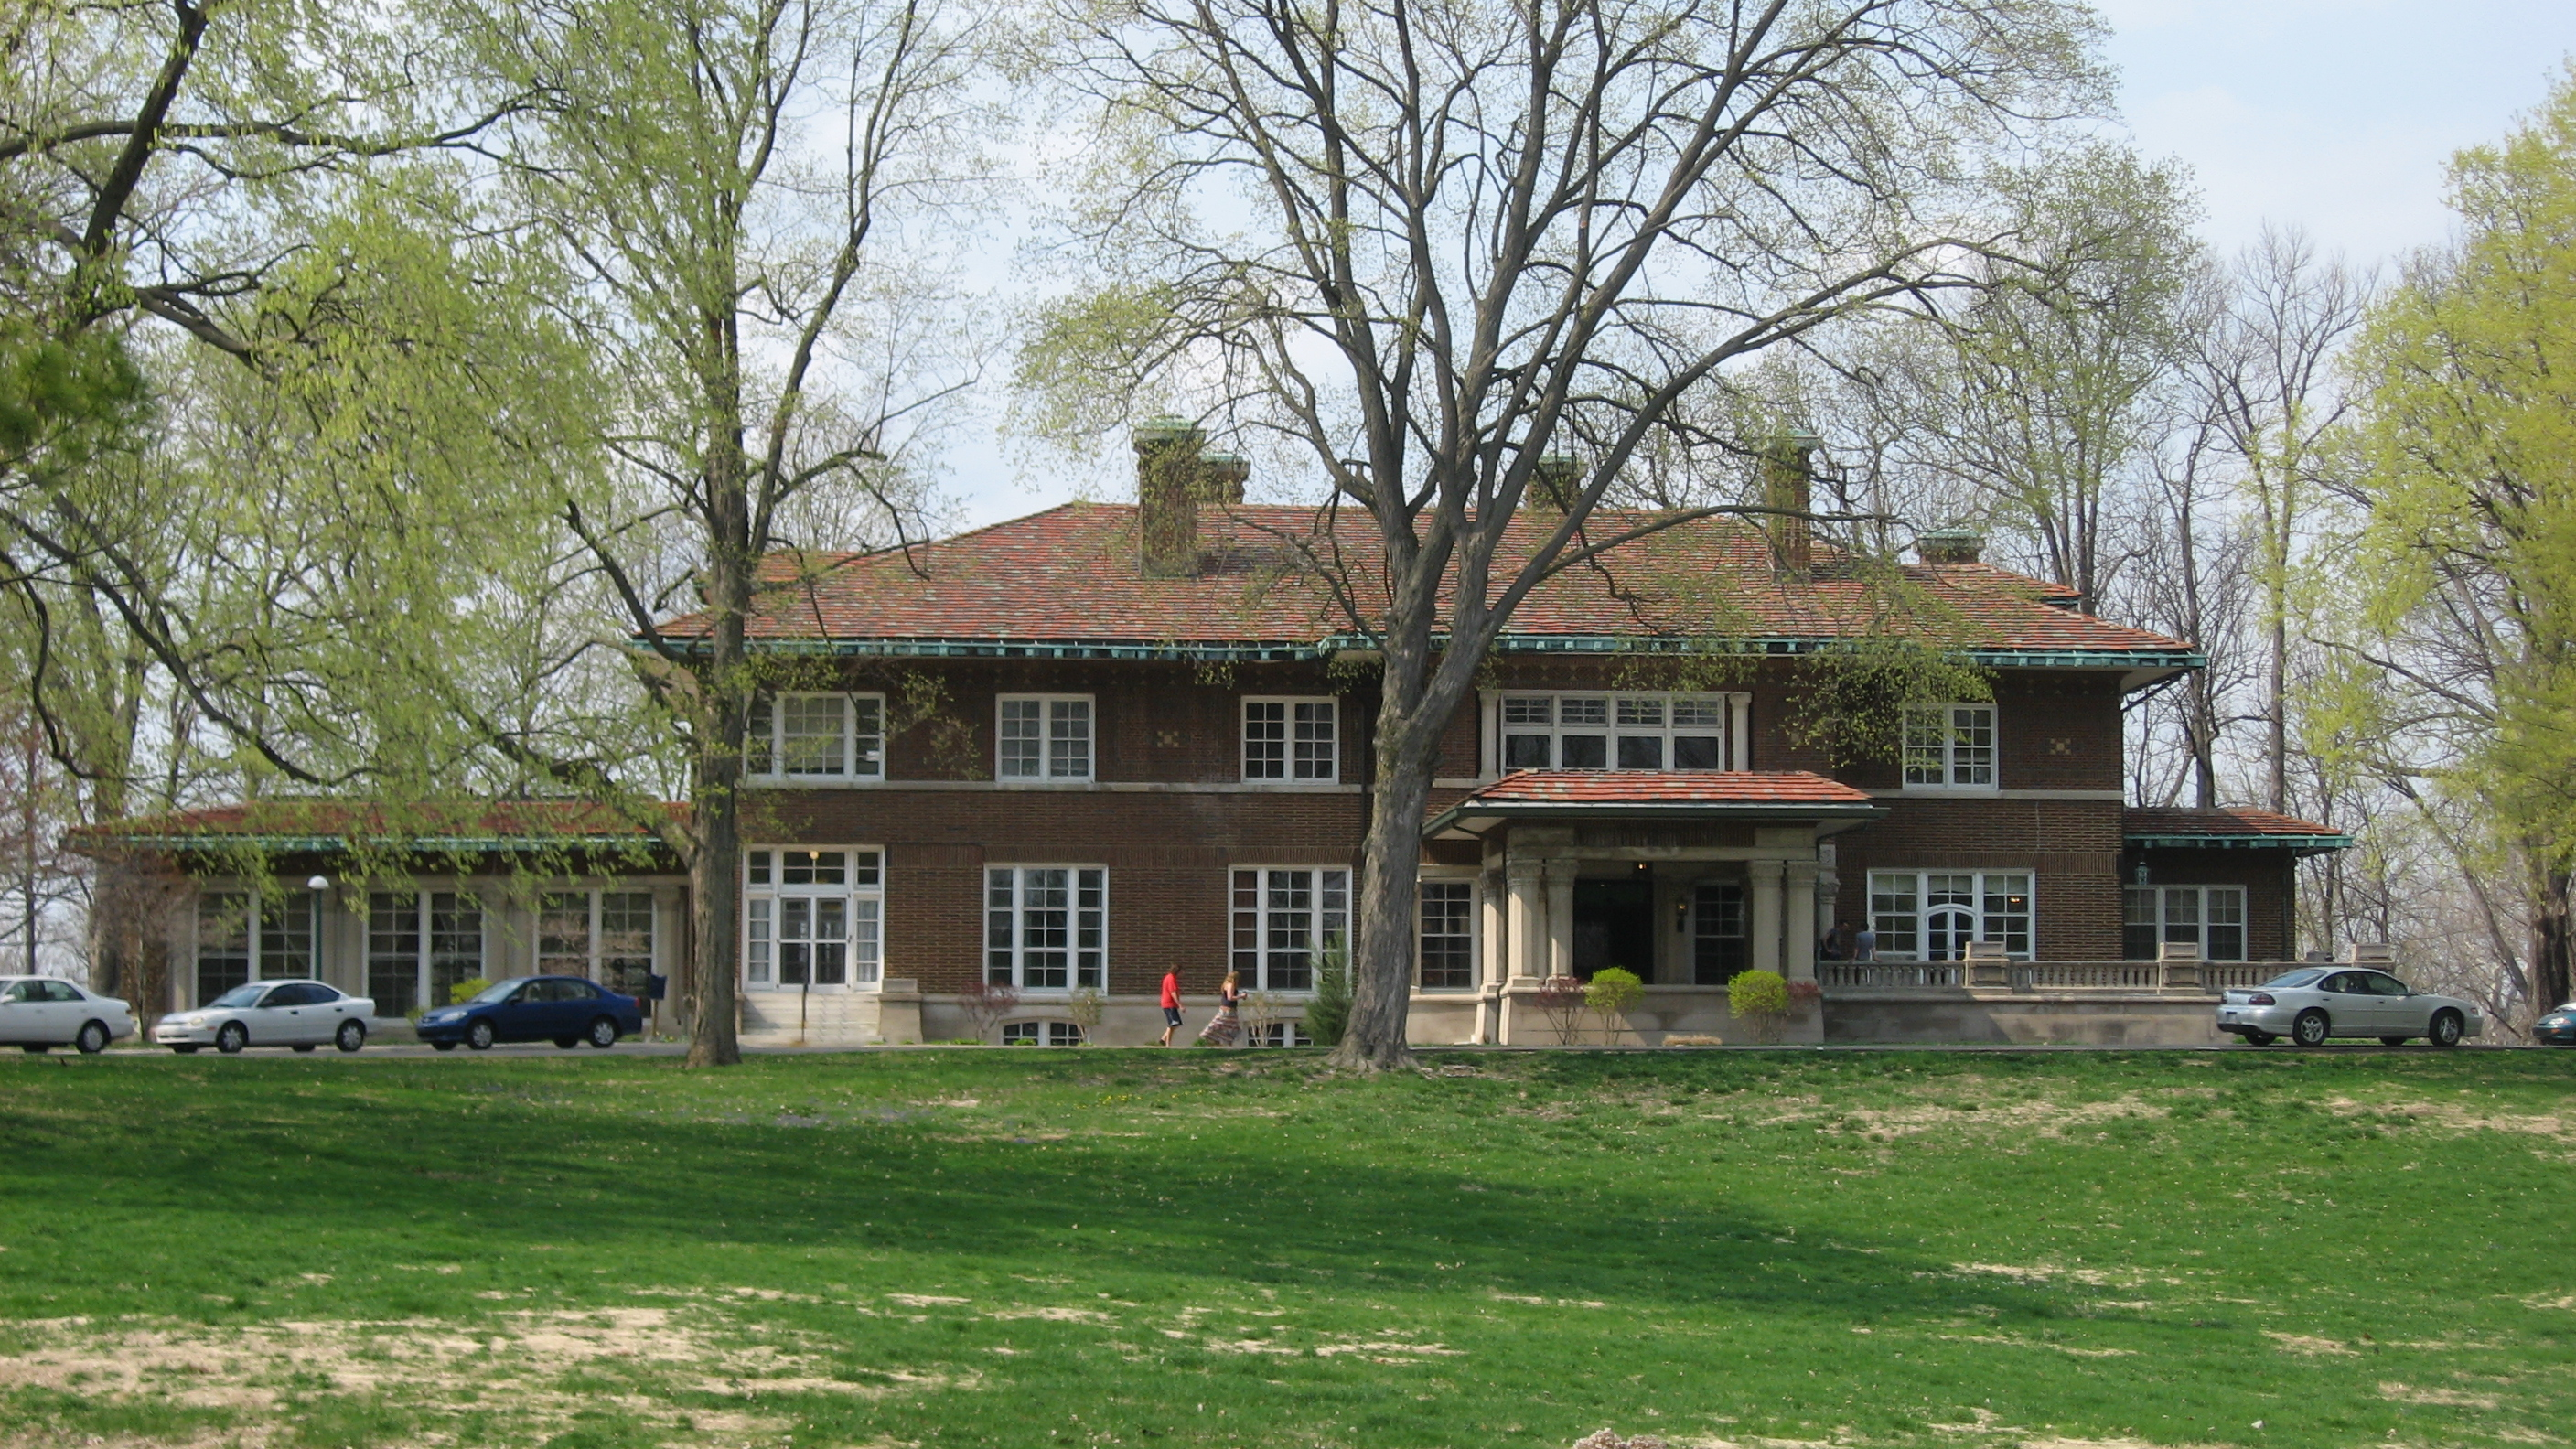 The Allison Mansion combines the elements of the Prairie School design and a Spanish villa.